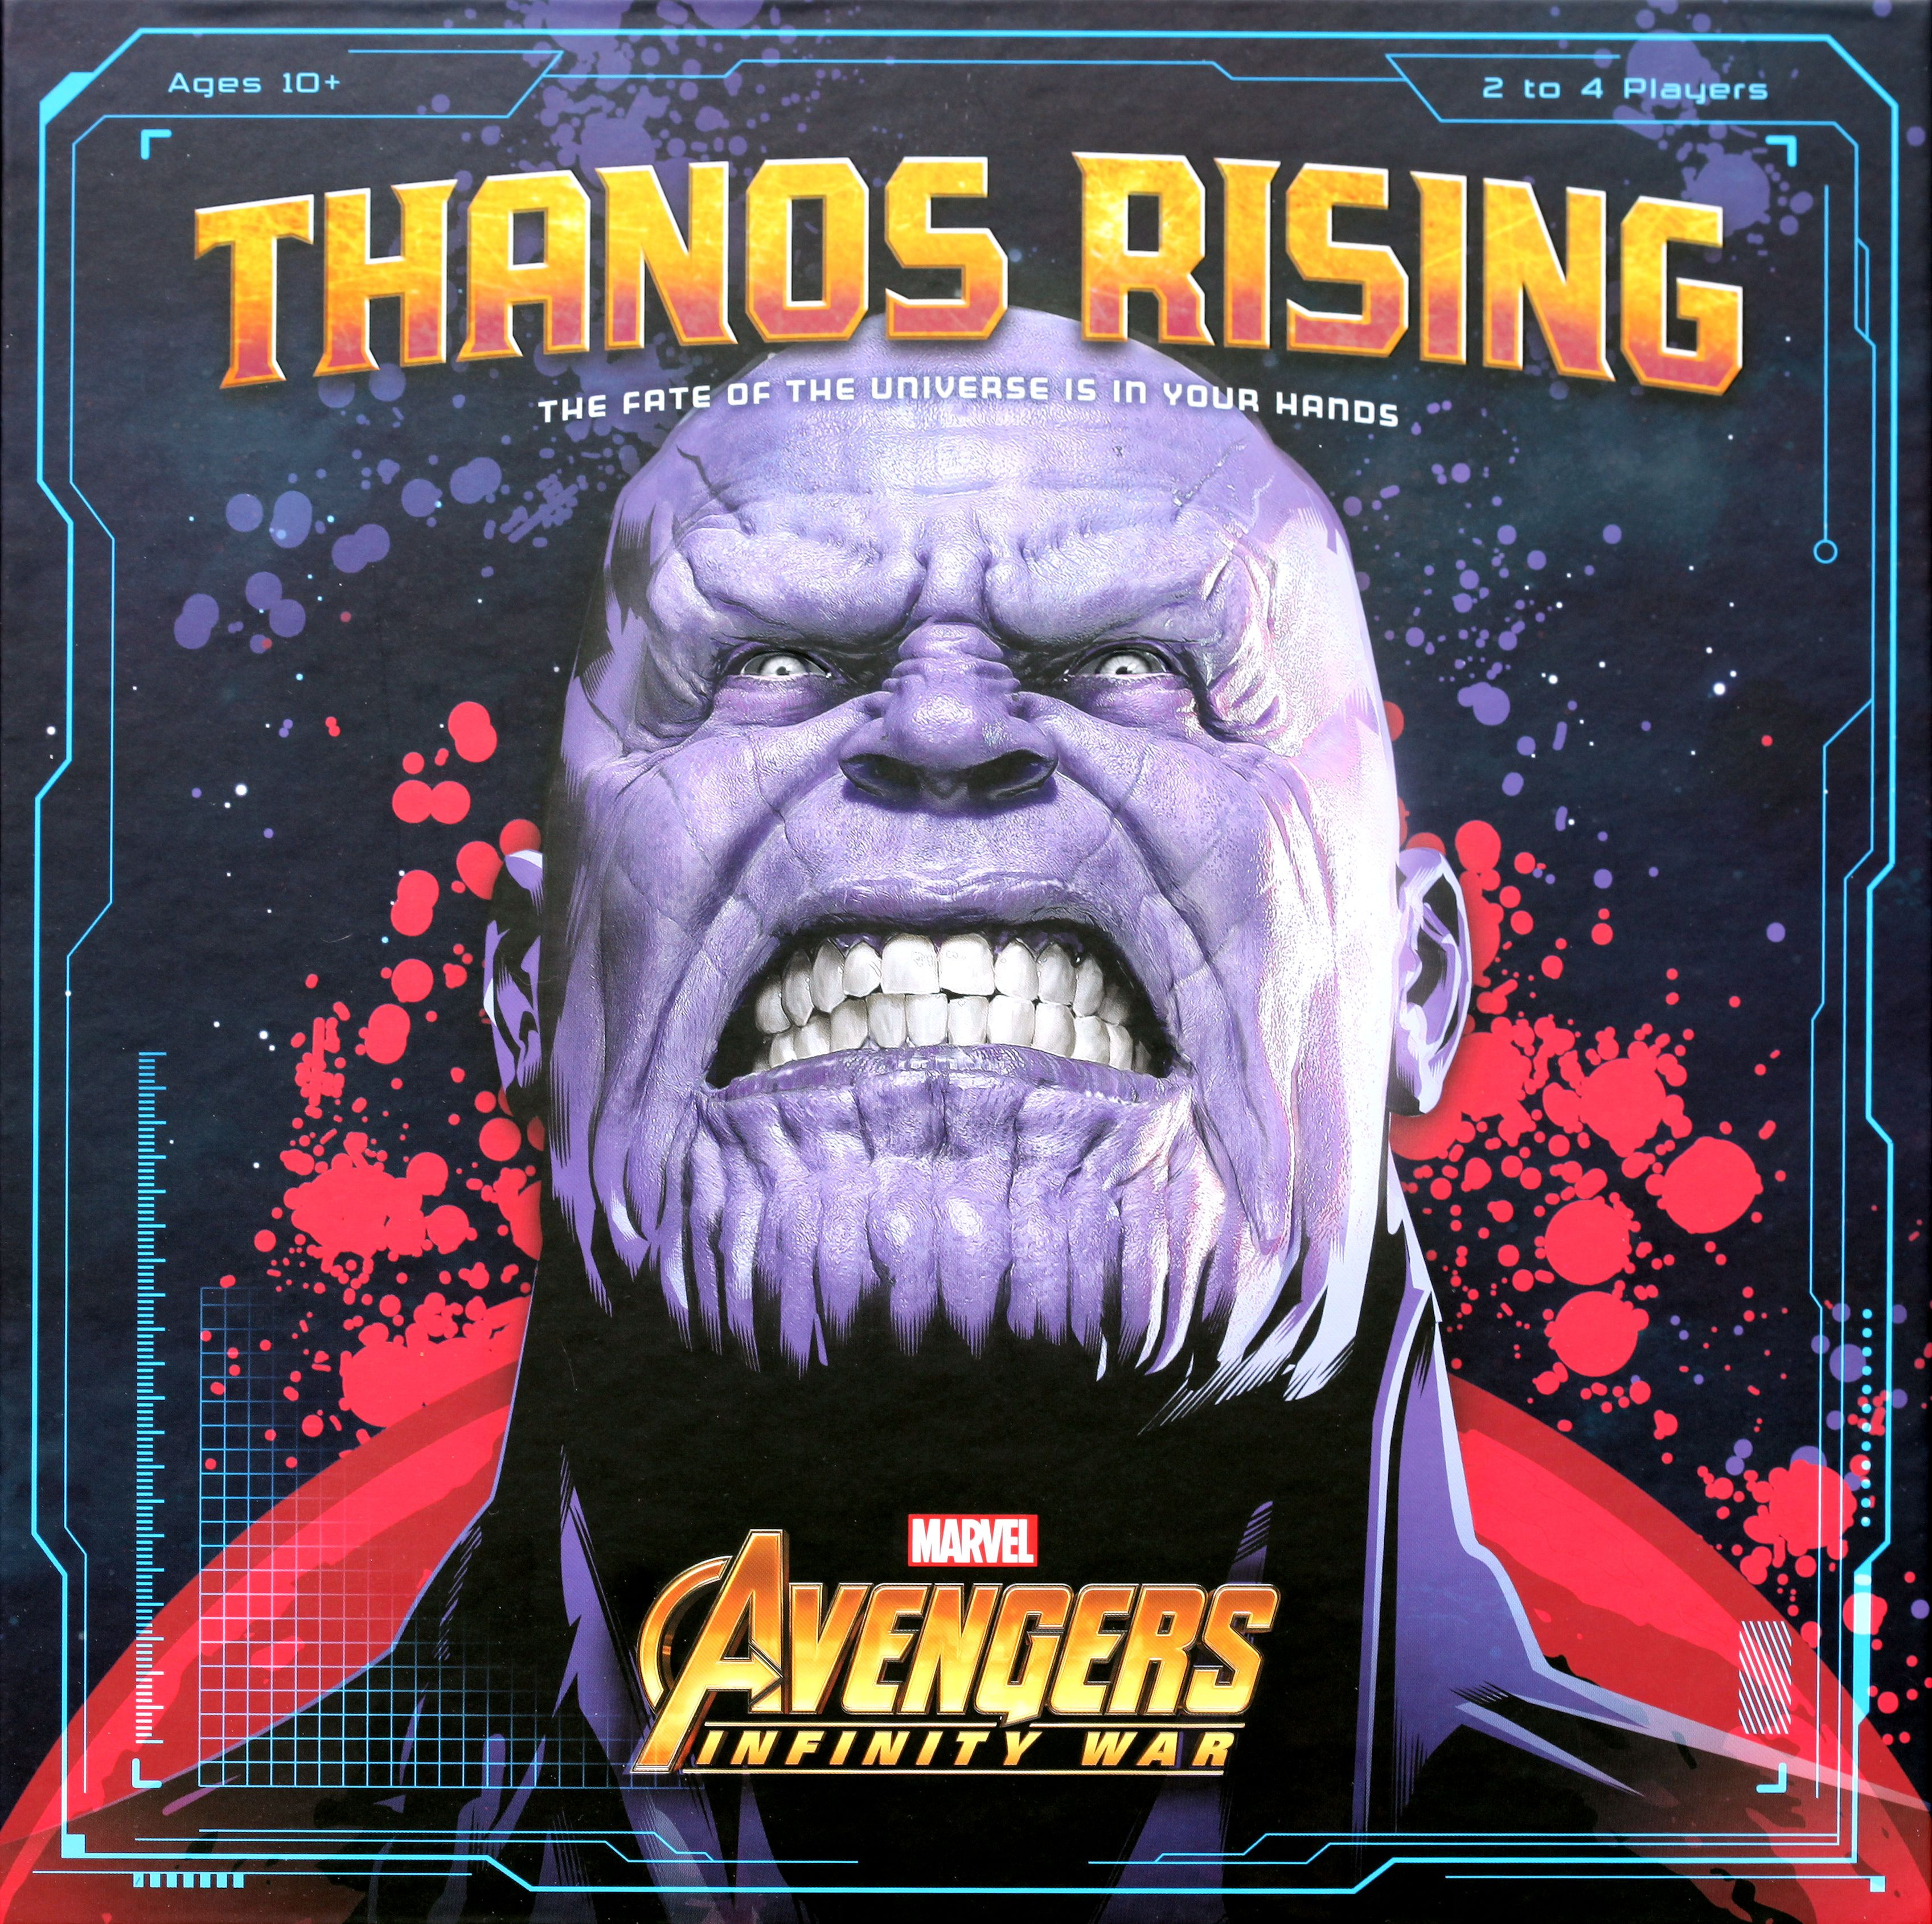 Main image for Thanos Rising: Avengers Infinity War